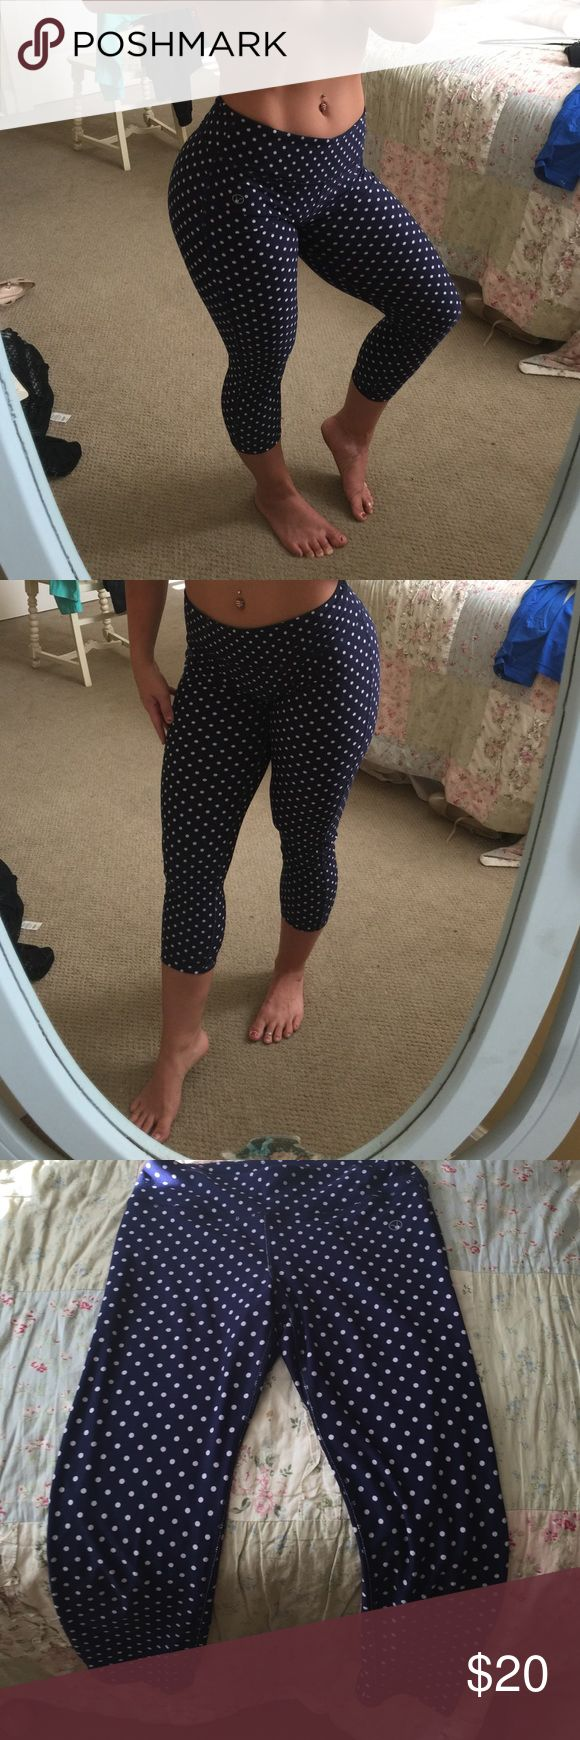 Vogo Athletica Polka dot leggings Navy blue with white polka dots. Super soft and fits in all the right places perfectly Can be used for gym or casual wear. Polyester/spandex blend. Pants Leggings